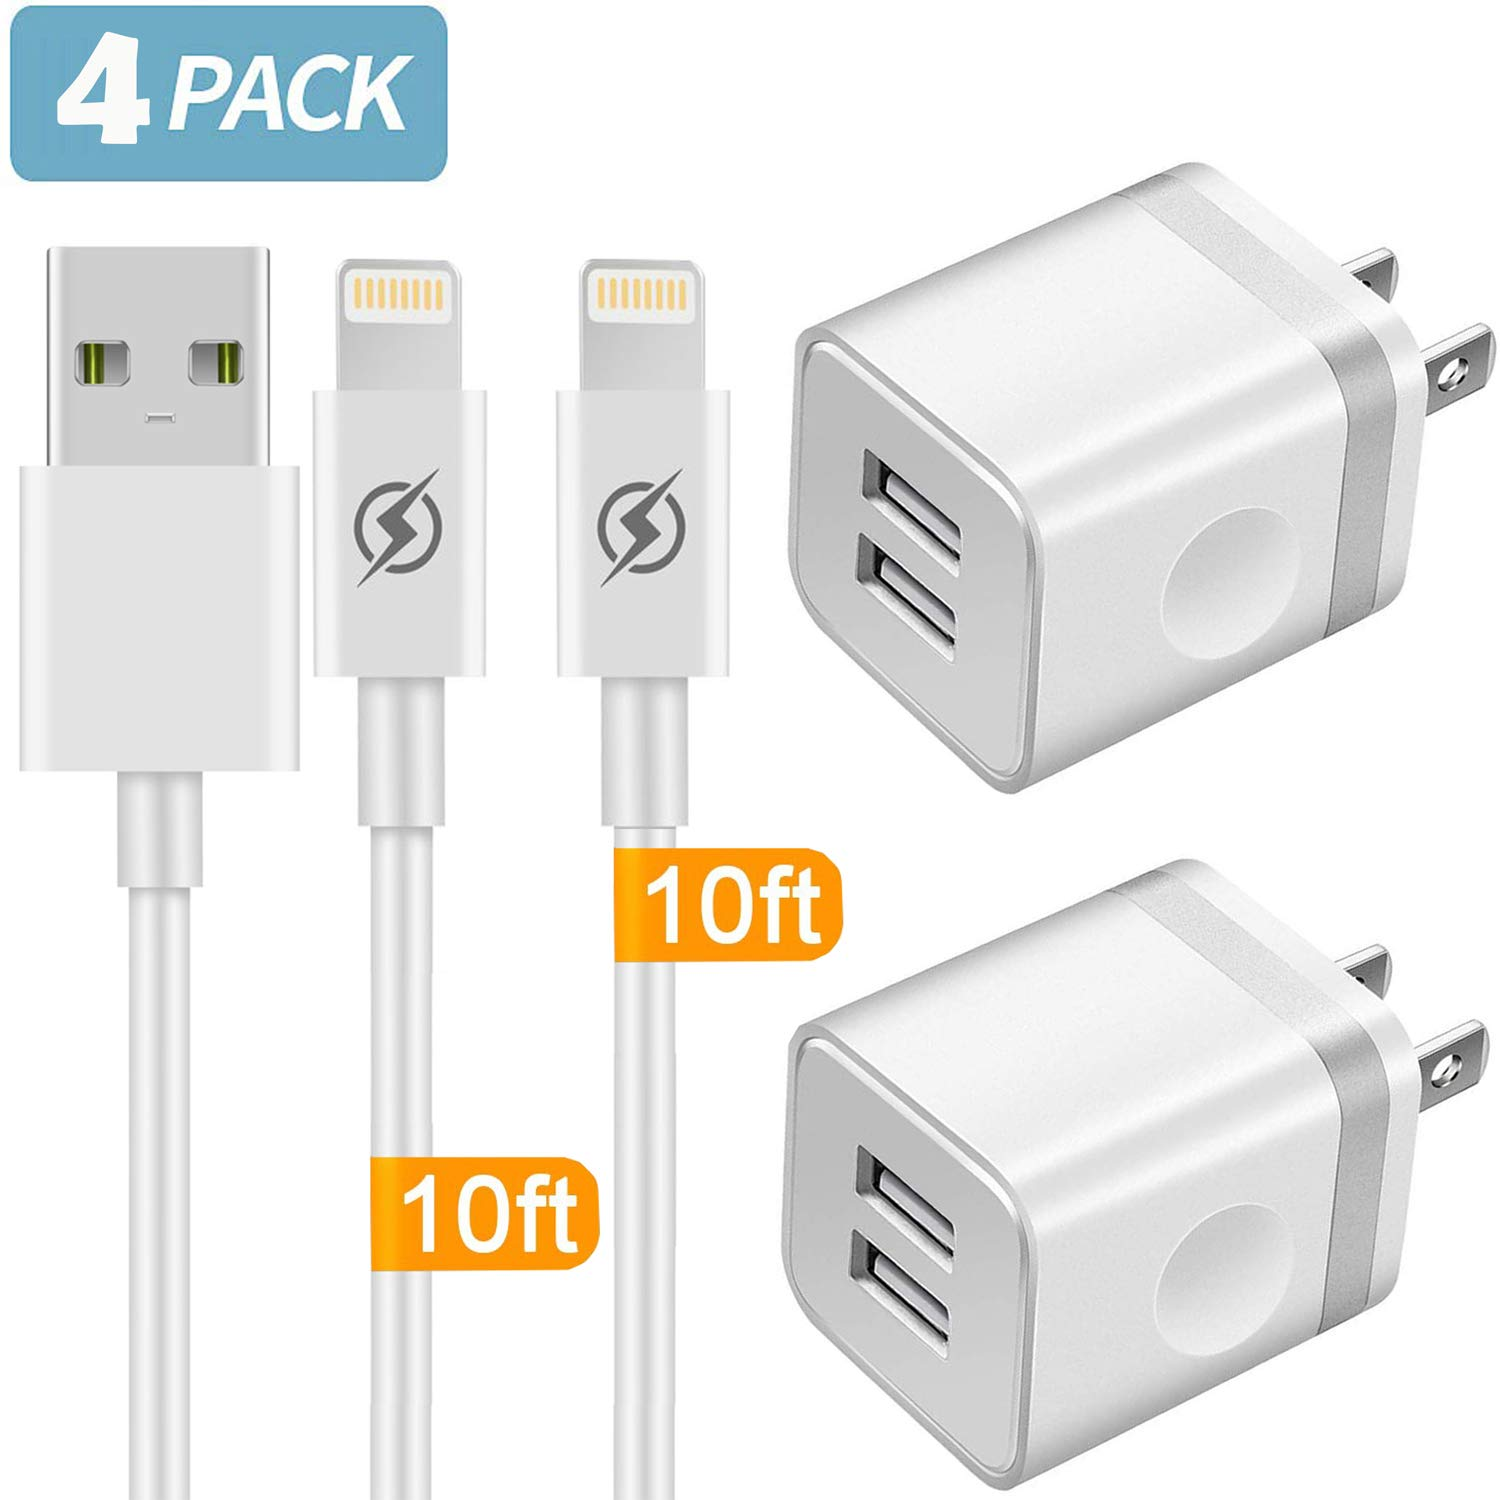 Phone Charger 10ft Cable with Wall Plug (4 in 1), YANME 2 Port USB Wall Charger Adapter Block with 10 Feet Long Charging Cord Compatible with Phone Xs/Xs Max/XR/X 8/7/6/6S Plus SE/5S/5C, Pad, Pod